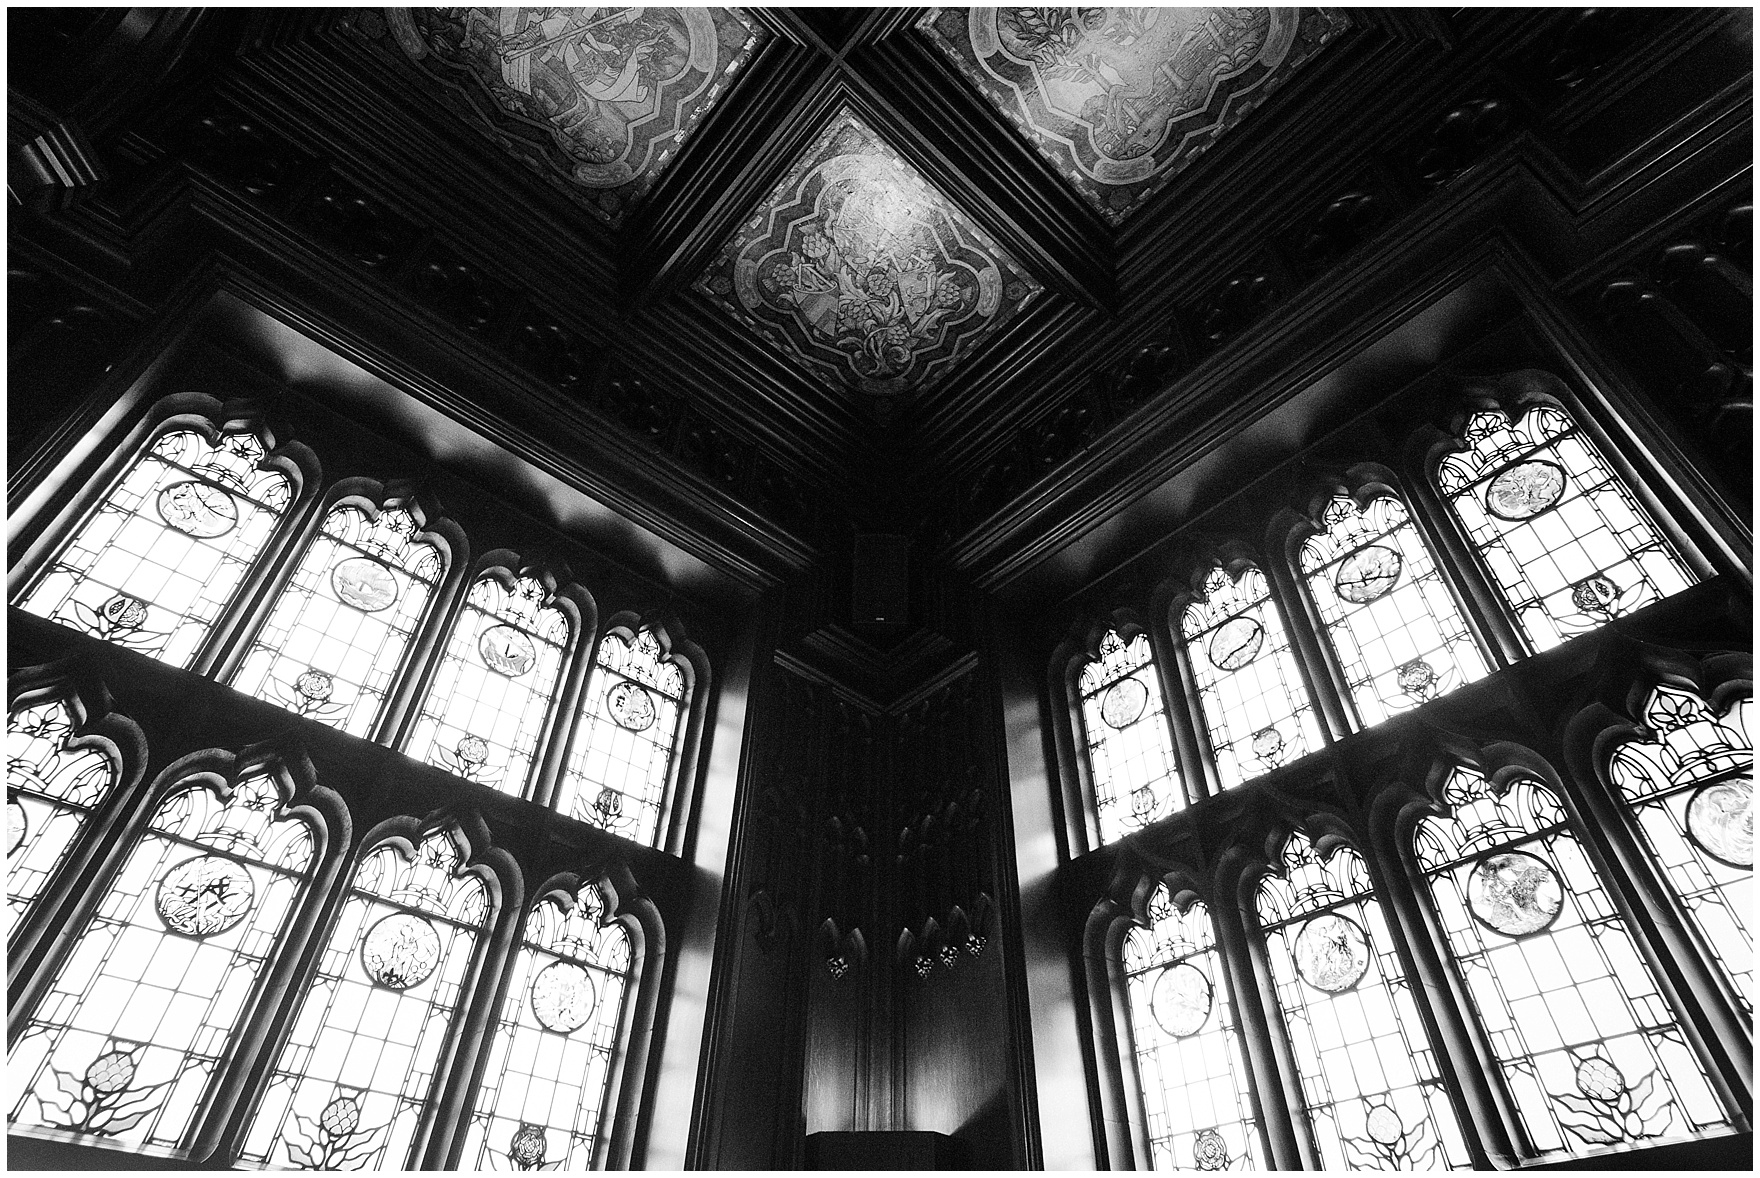 Detail of the windows and ceiling of the Michigan Room for a University Club of Chicago wedding.